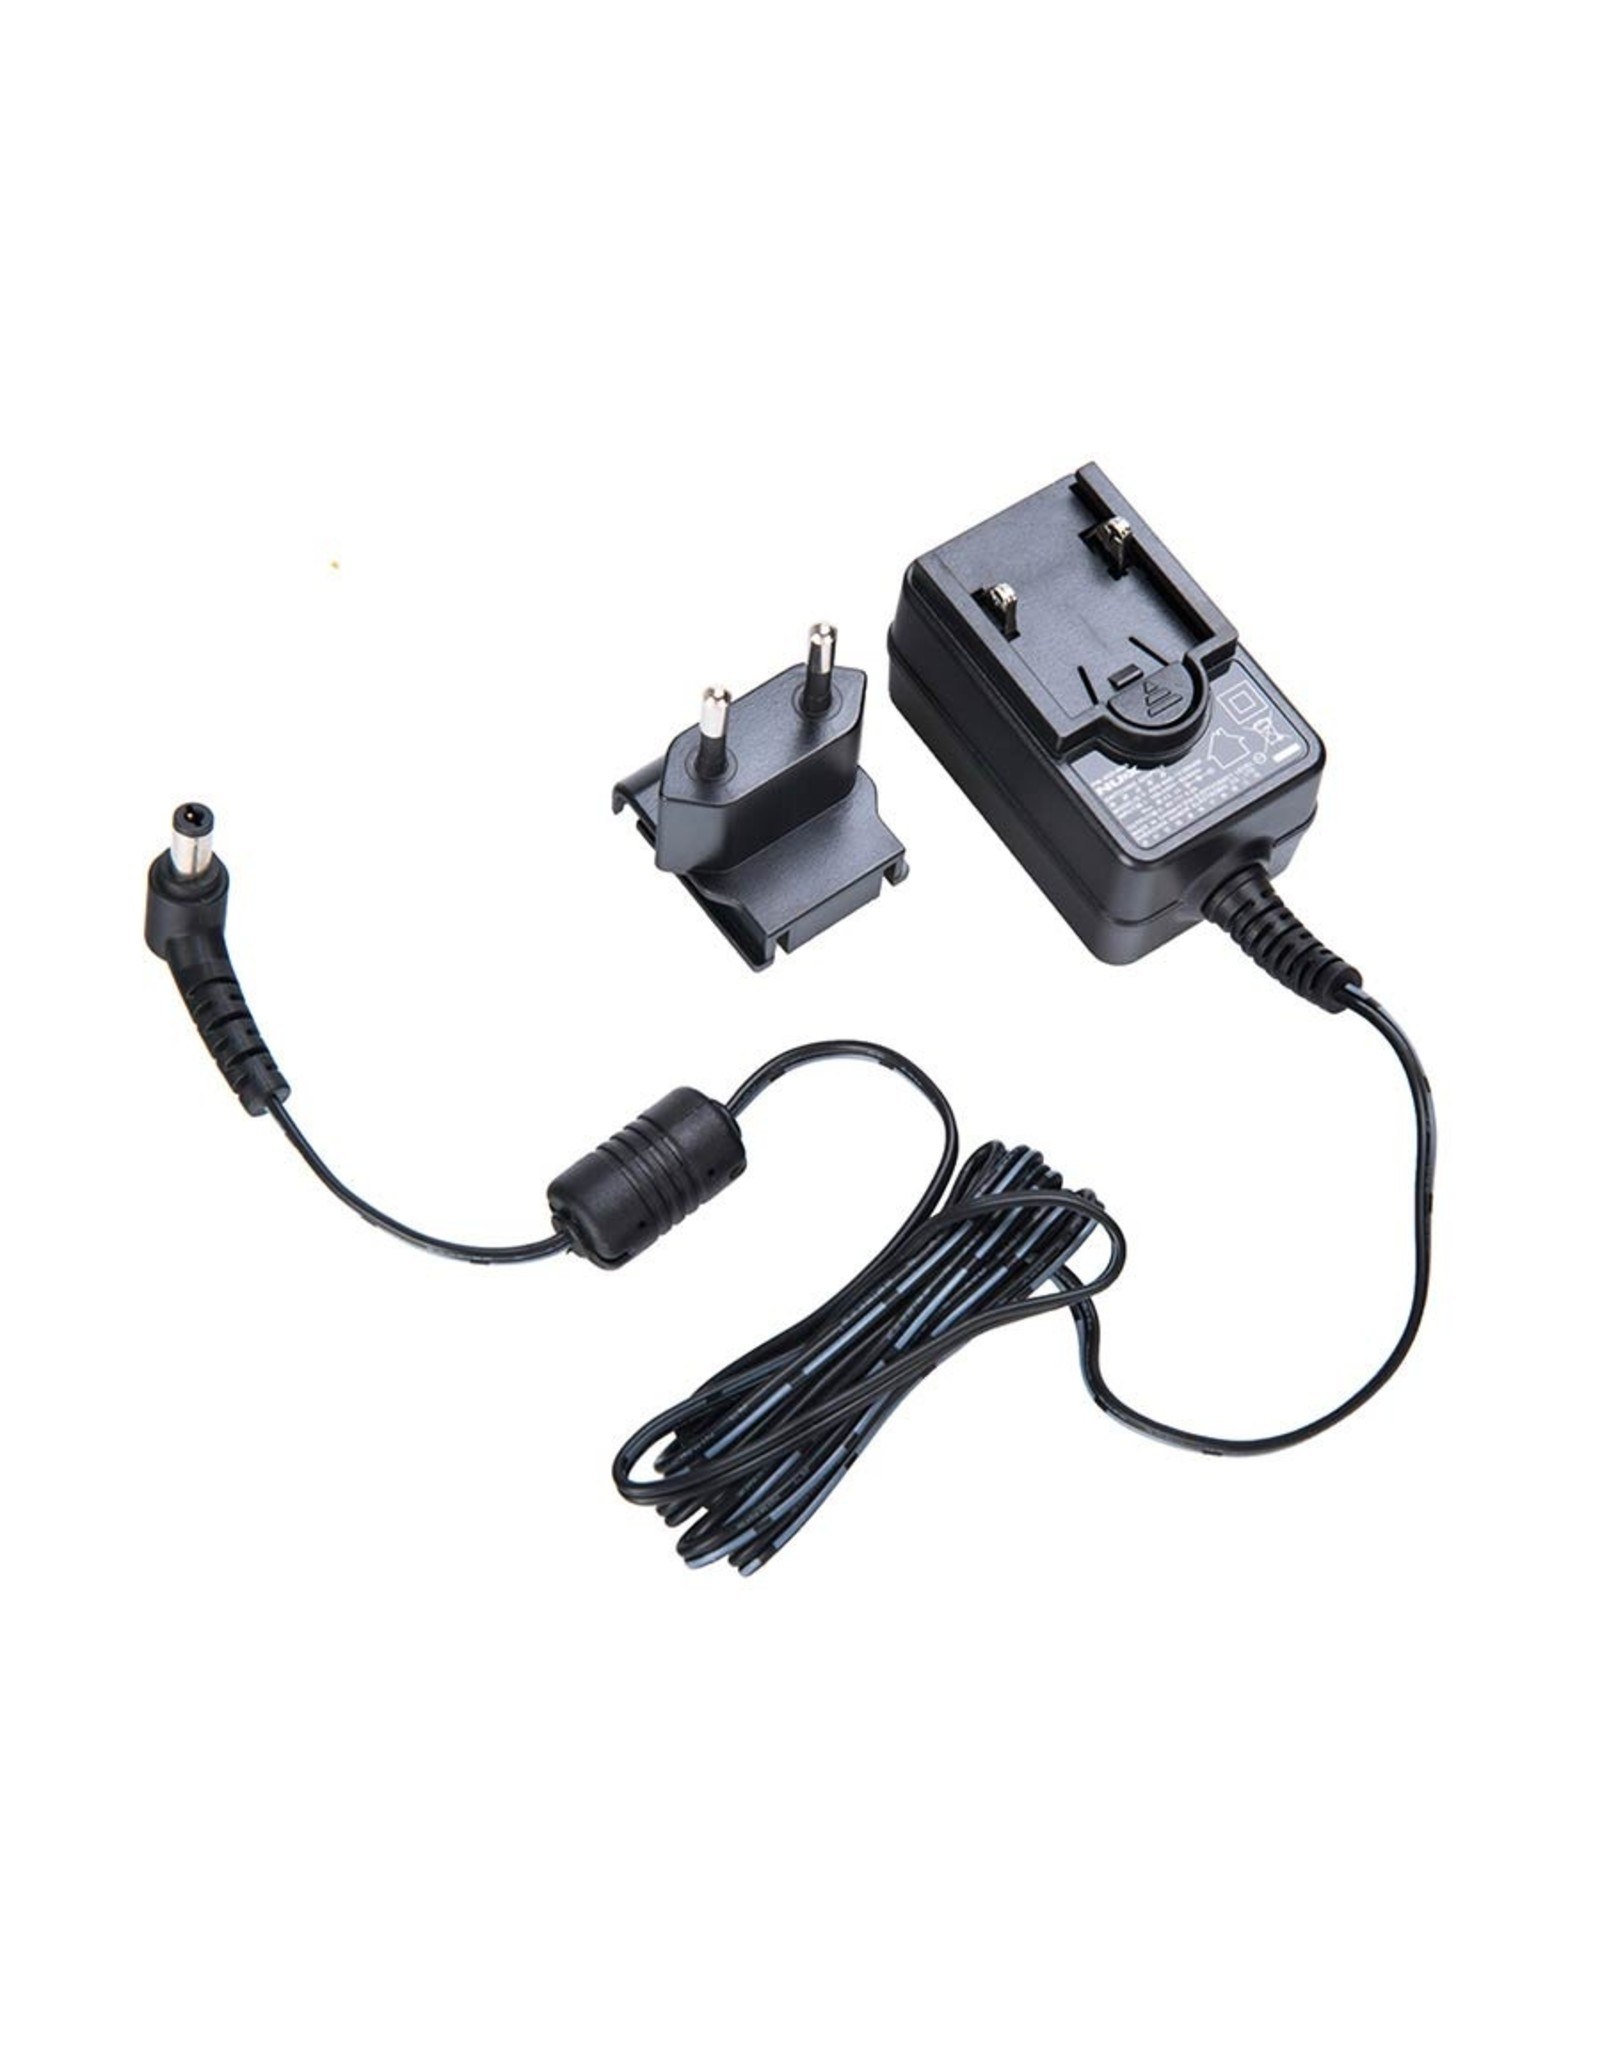 NUX NUX ACD-006A/EU Power Supply